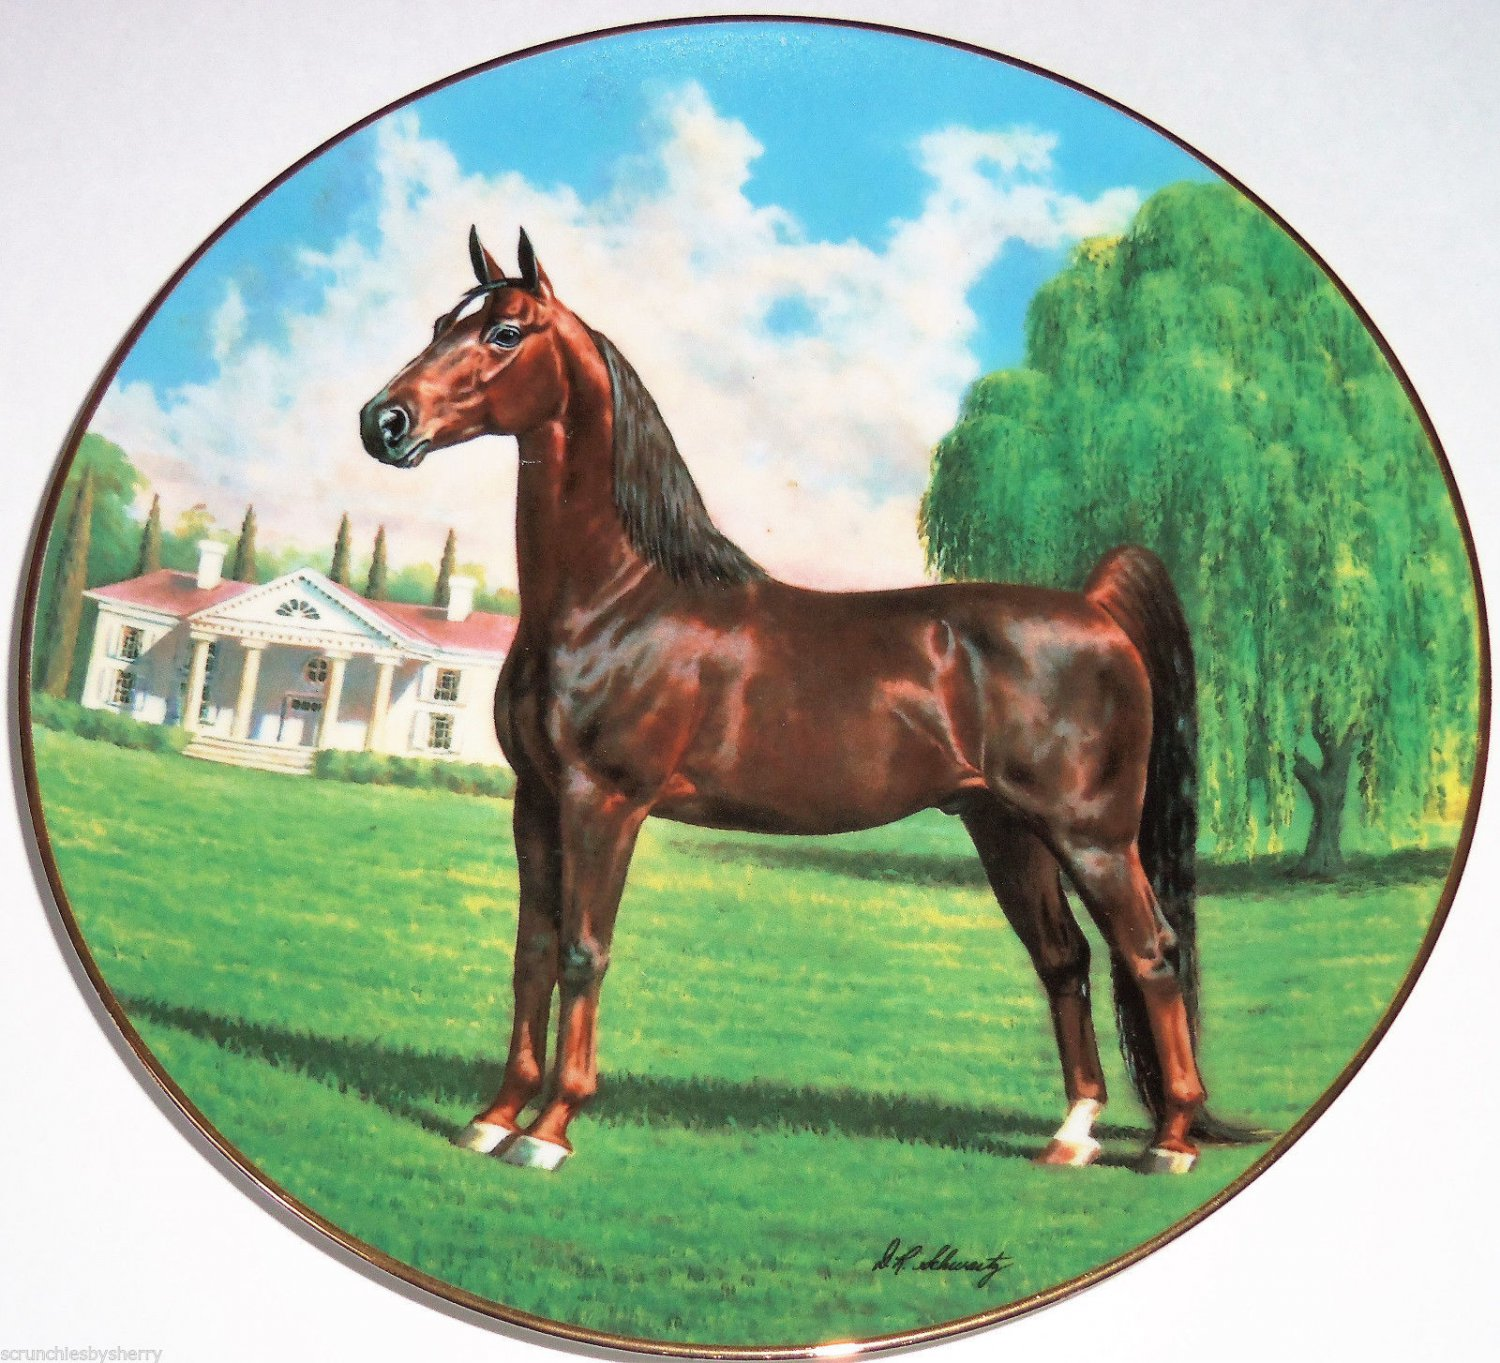 Purebred Horses of America Collector Plate The Saddlebred WS George Donald Schwartz